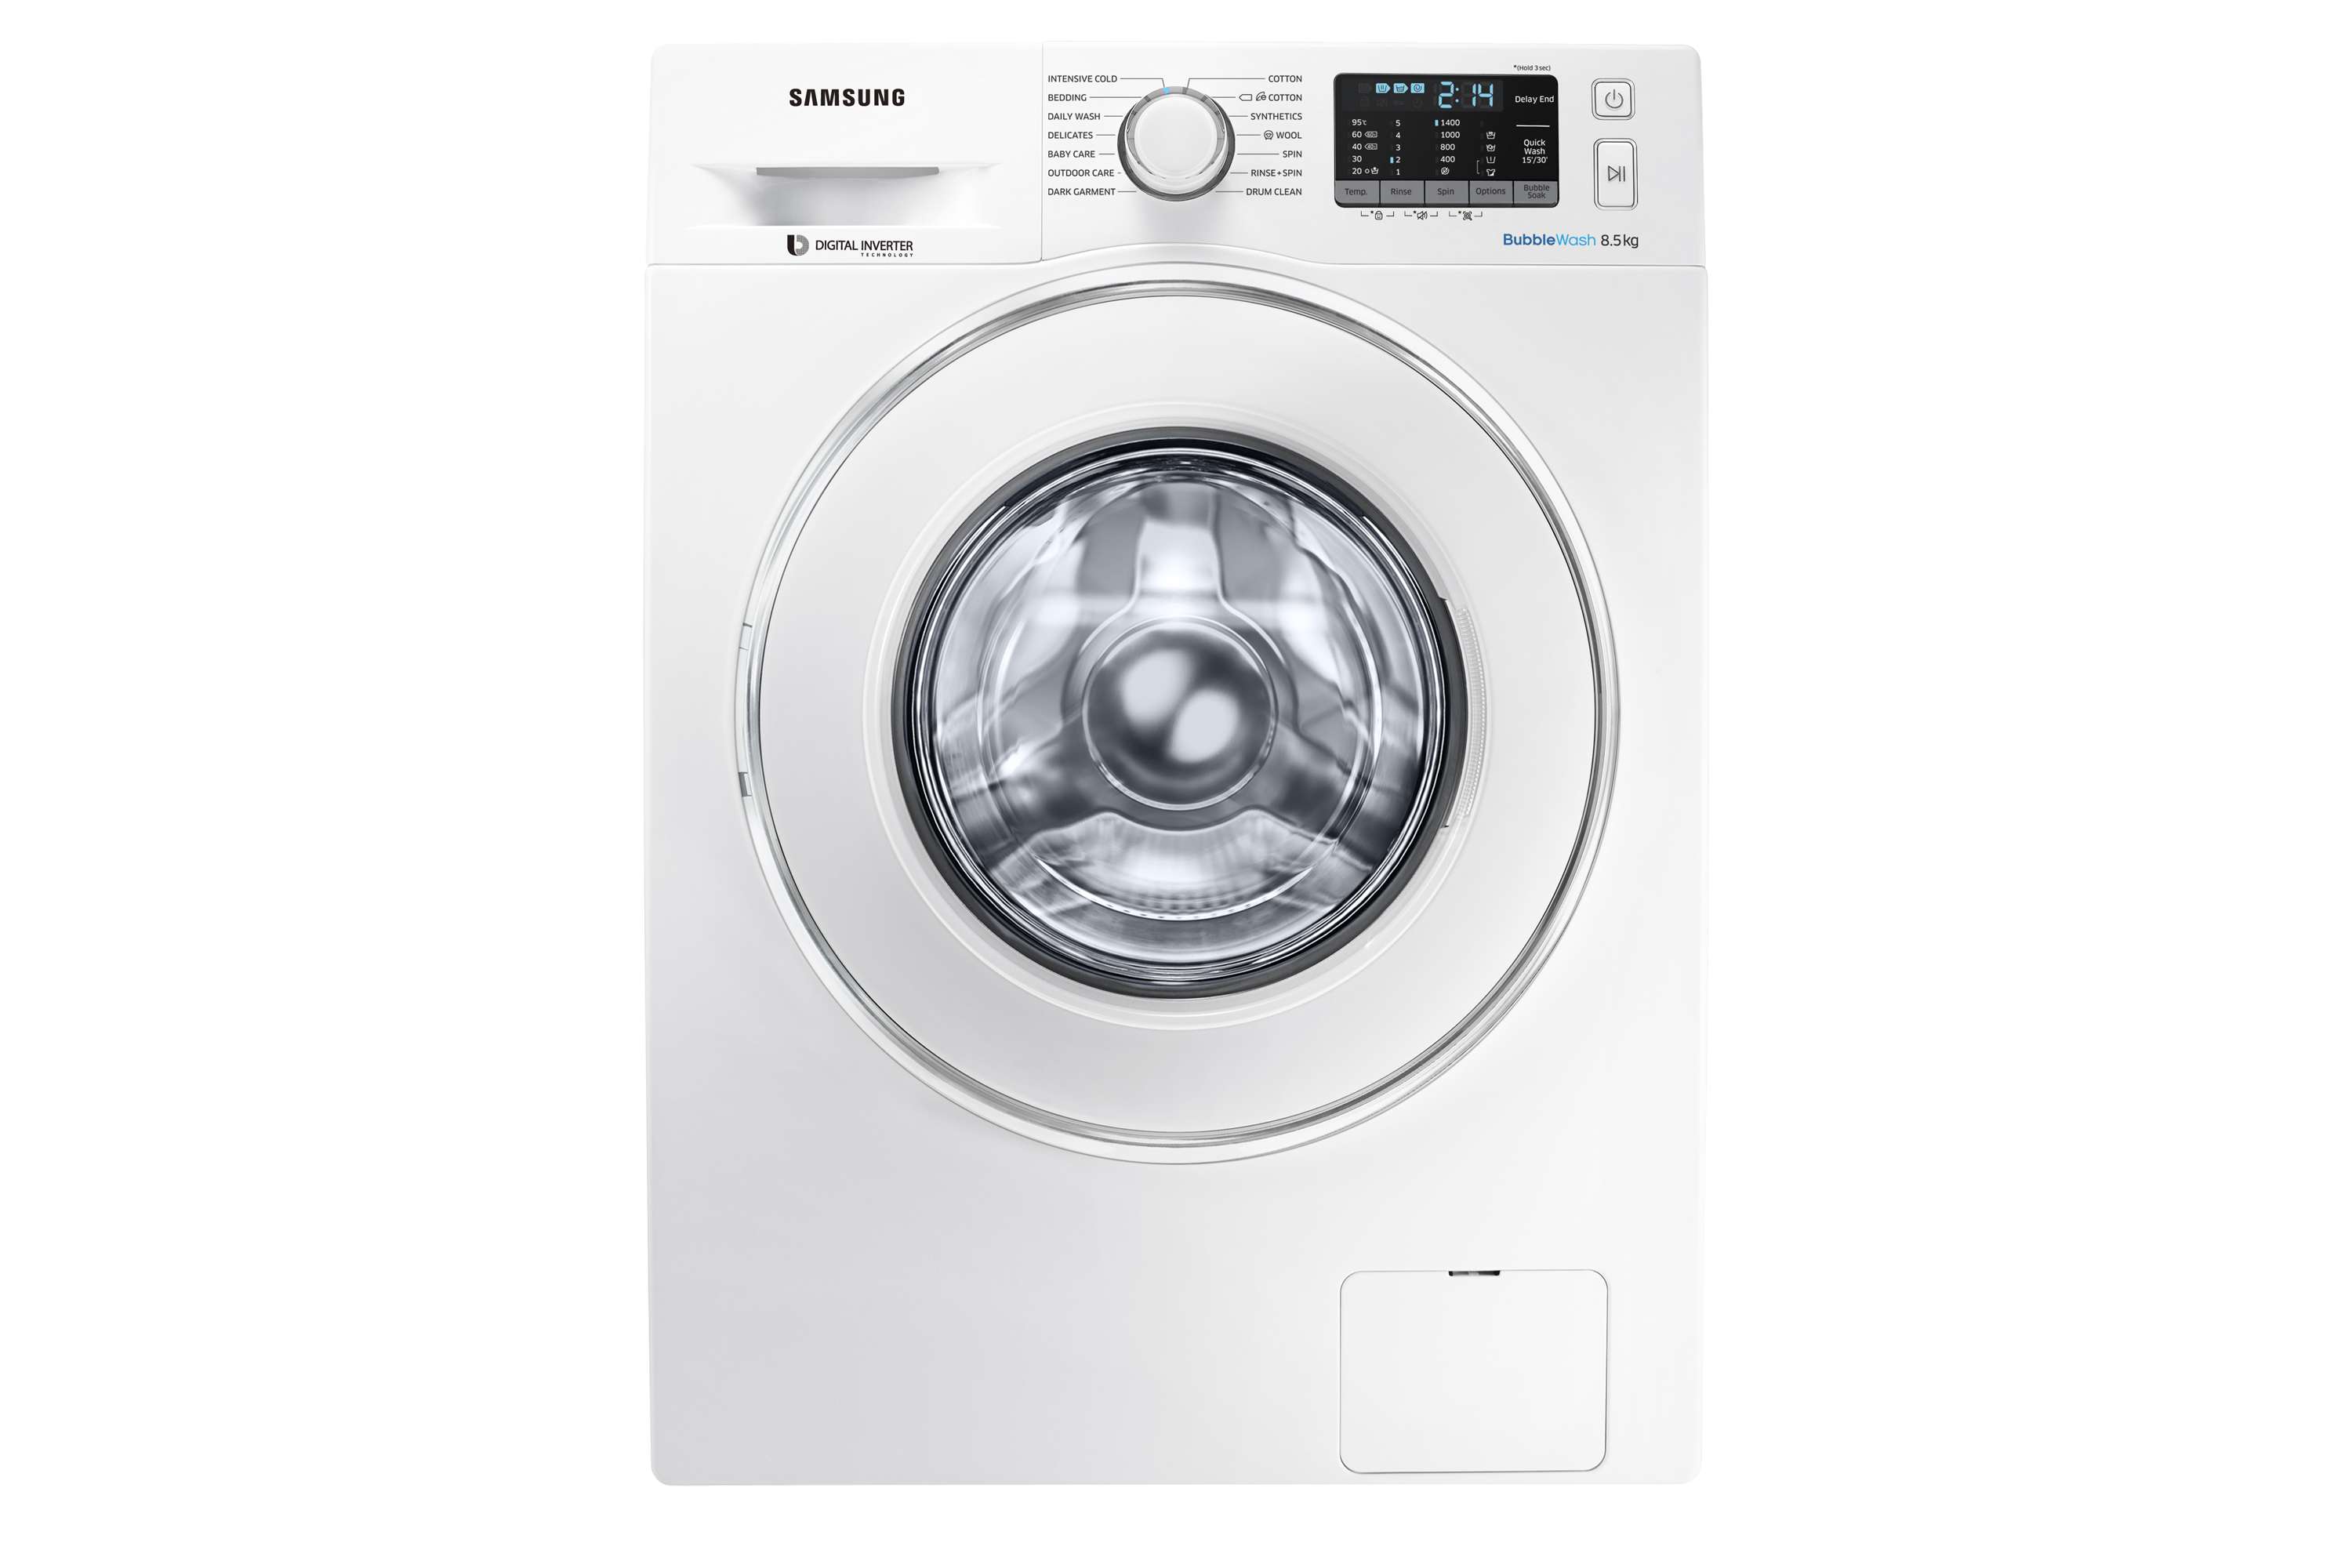 8 5kg Front Load Washer - WW85J5410IW | Samsung Support